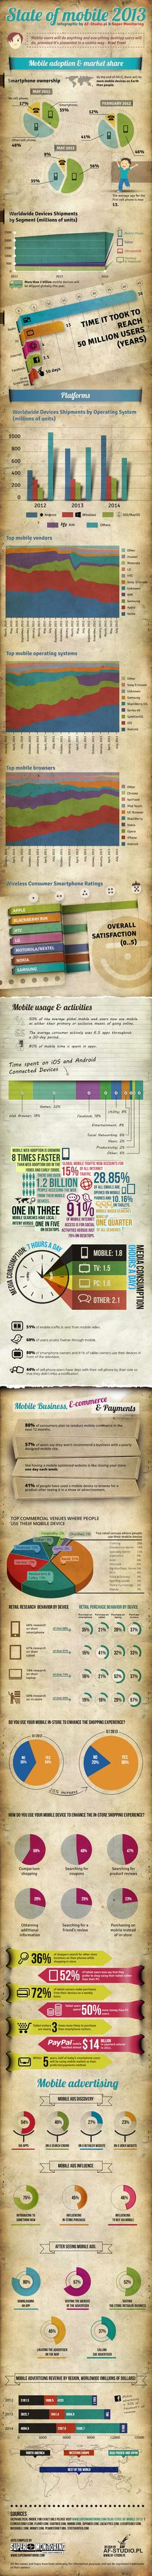 State of Mobile 2013